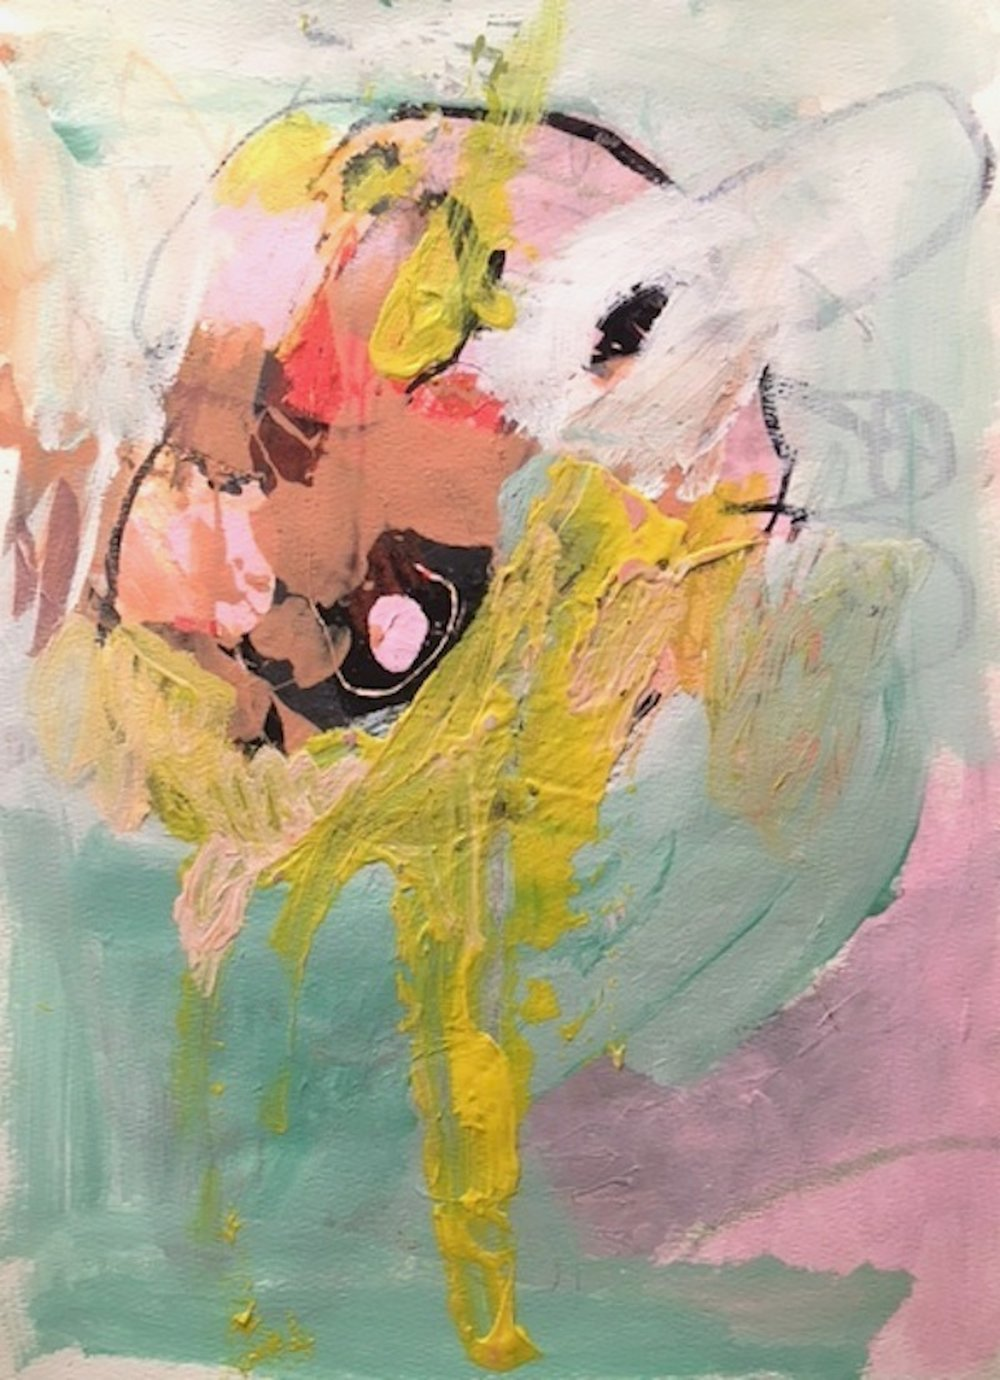 Untitled, 2016, acrylic, mixed media on paper. (Permanent collection, Foundation Center, NYC)